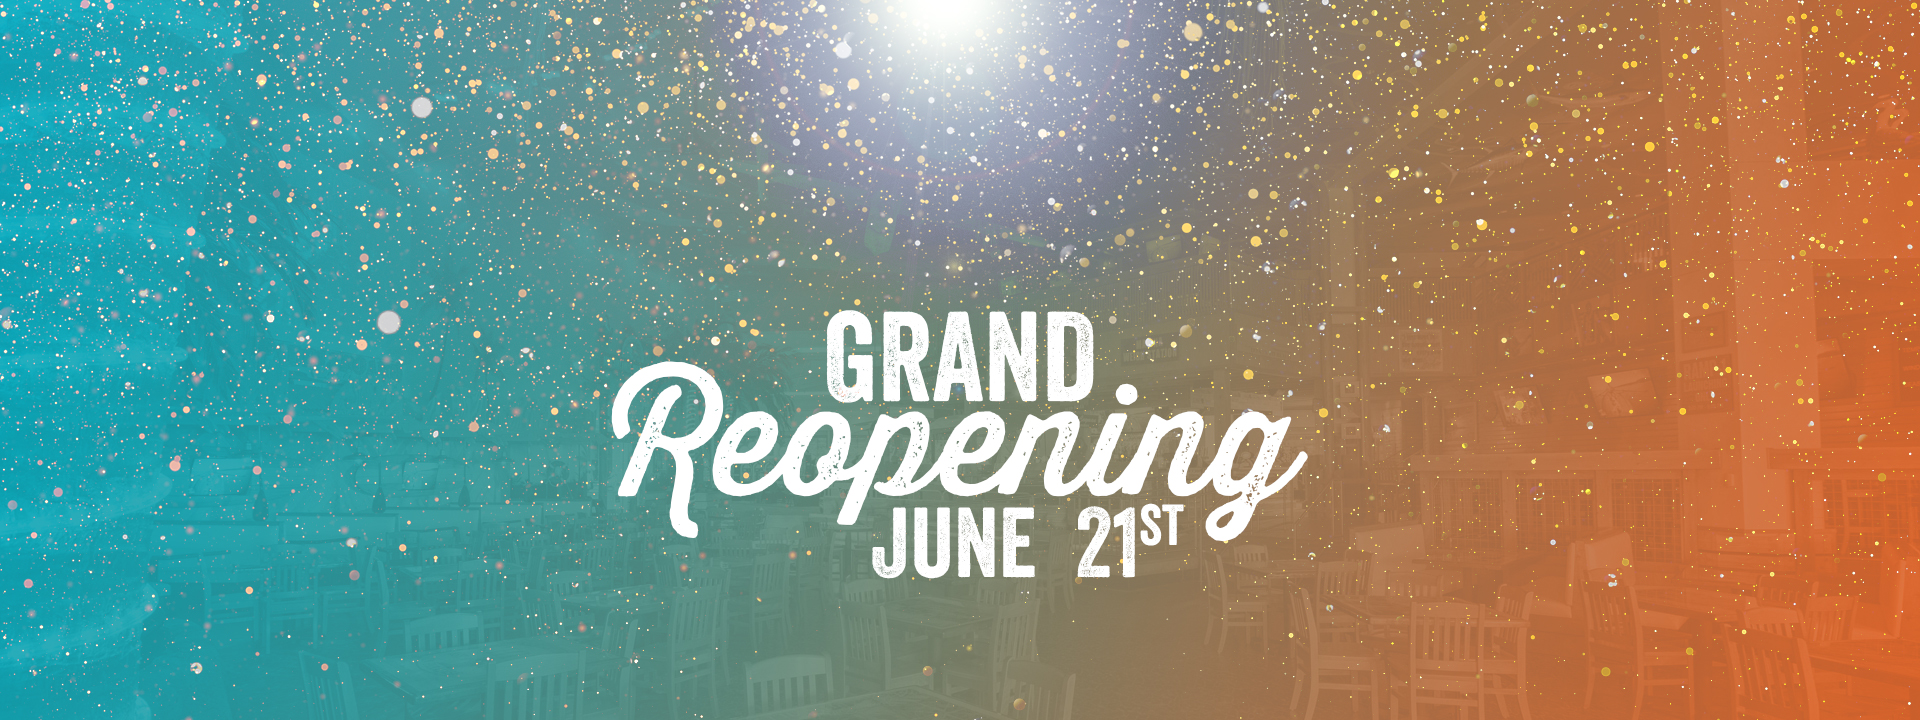 Text on image: Grand reopening June 21